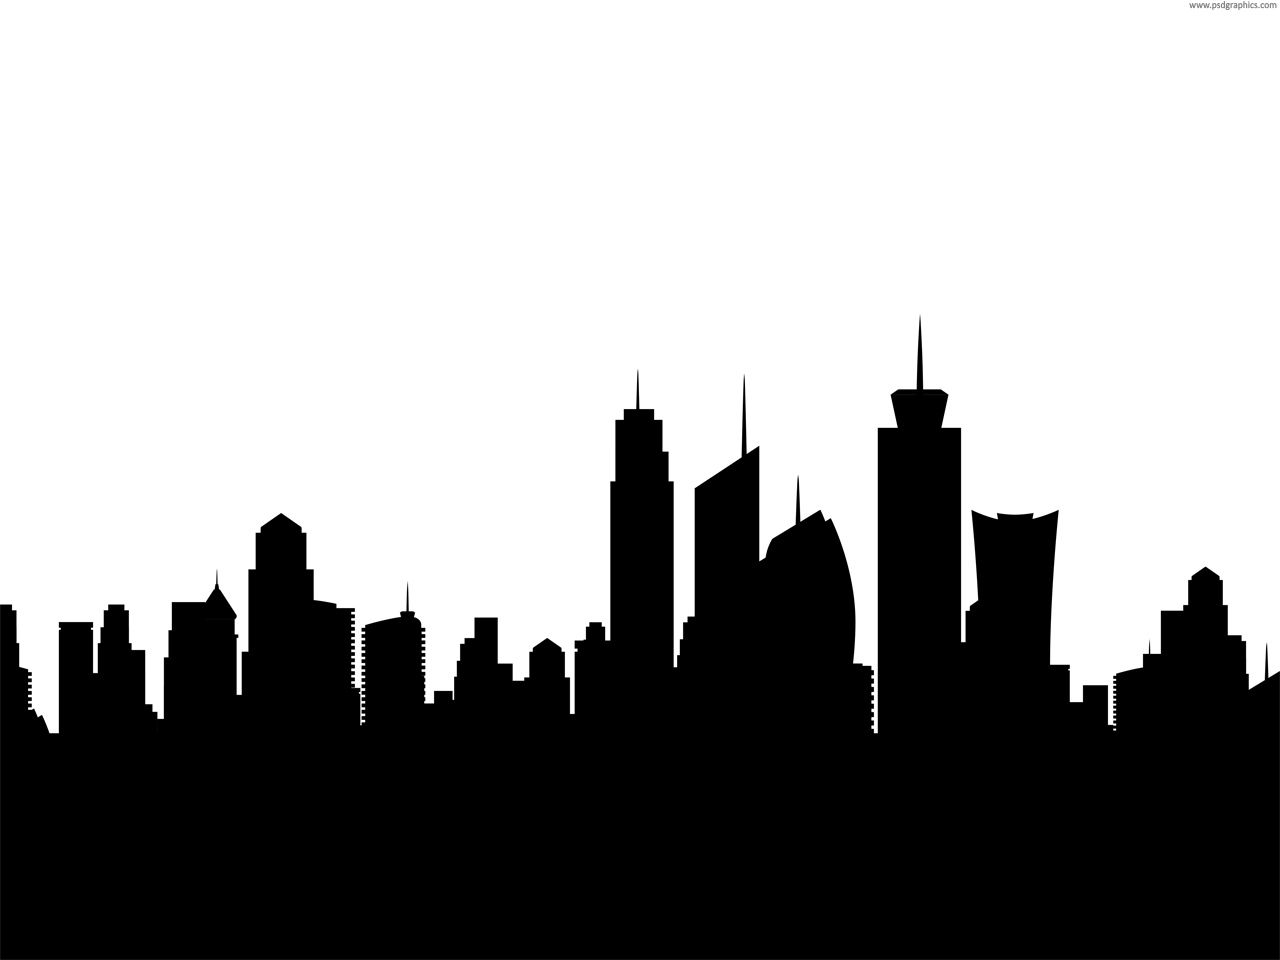 1280x960 I Wanted To Have A City Skyline Of Somewhere Like Miami Or Los